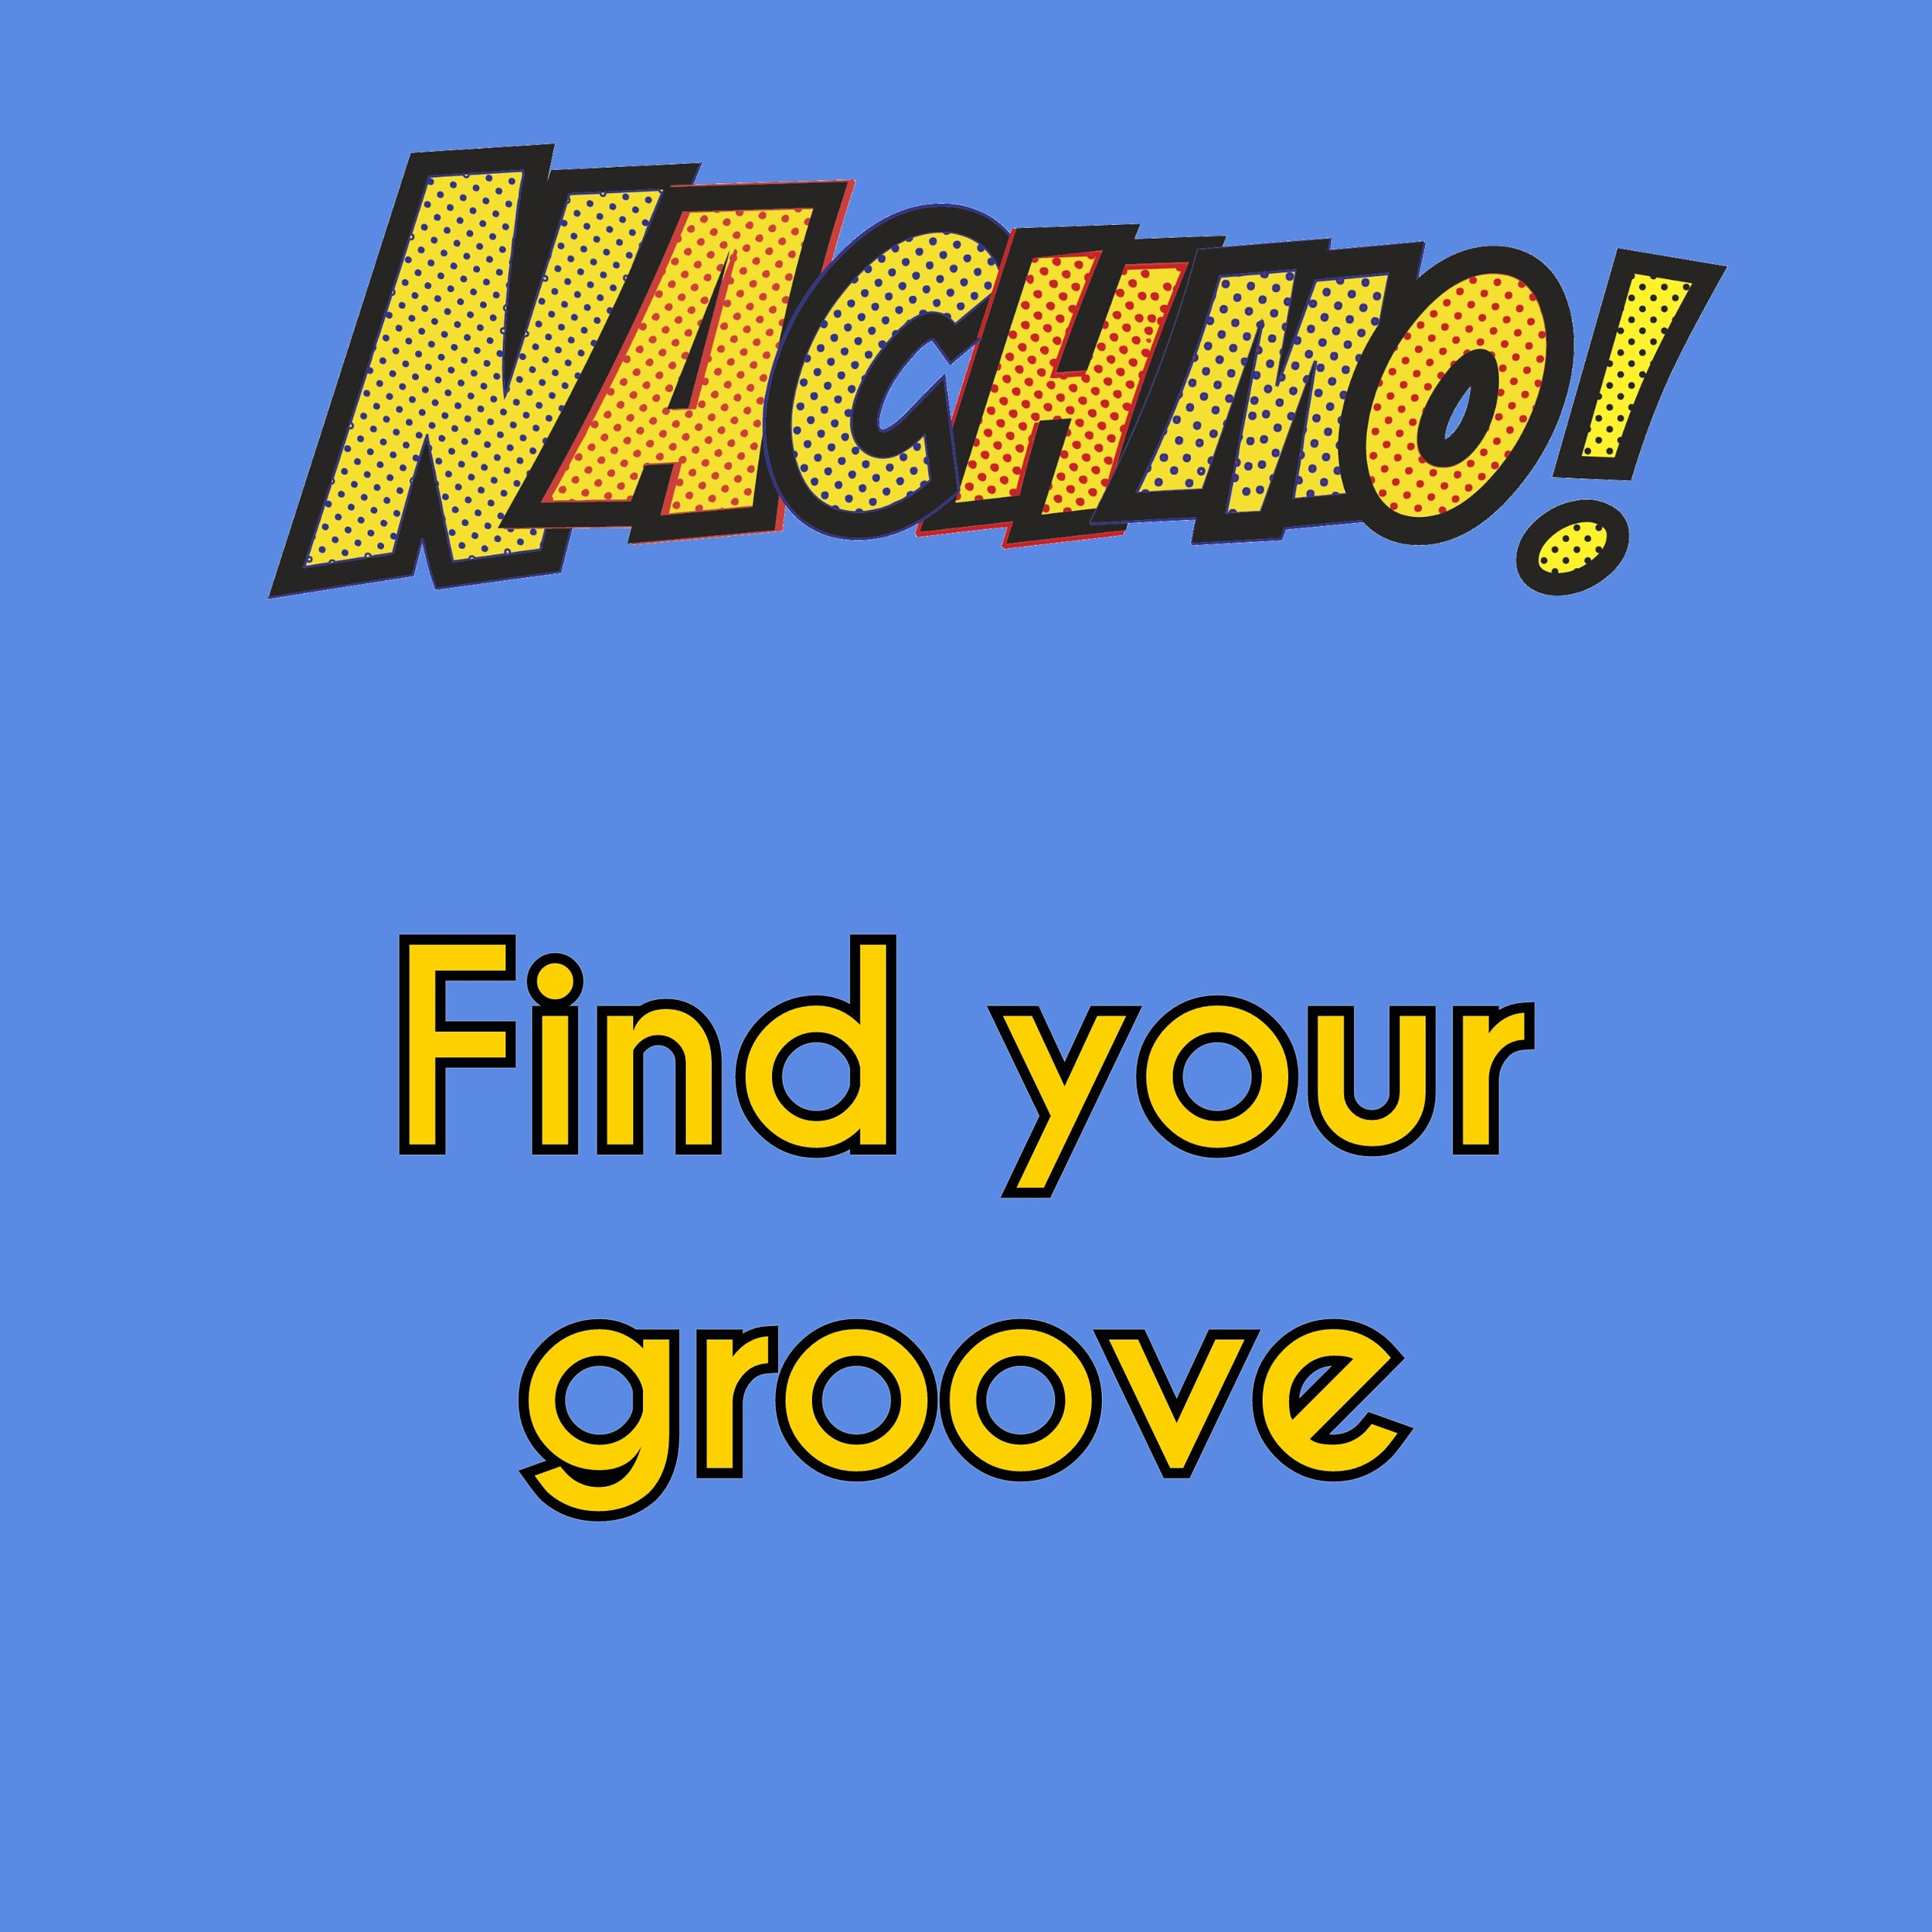 Jan 9: Find your groove - Prompt: Go to these Creative Commons websites and find a piece of music to work with.Plus: Think about licensing. Research how choreographers you admire work with music.Lens: If you know a musician who may want a video, reach out to them with your ideas for a dance film short.